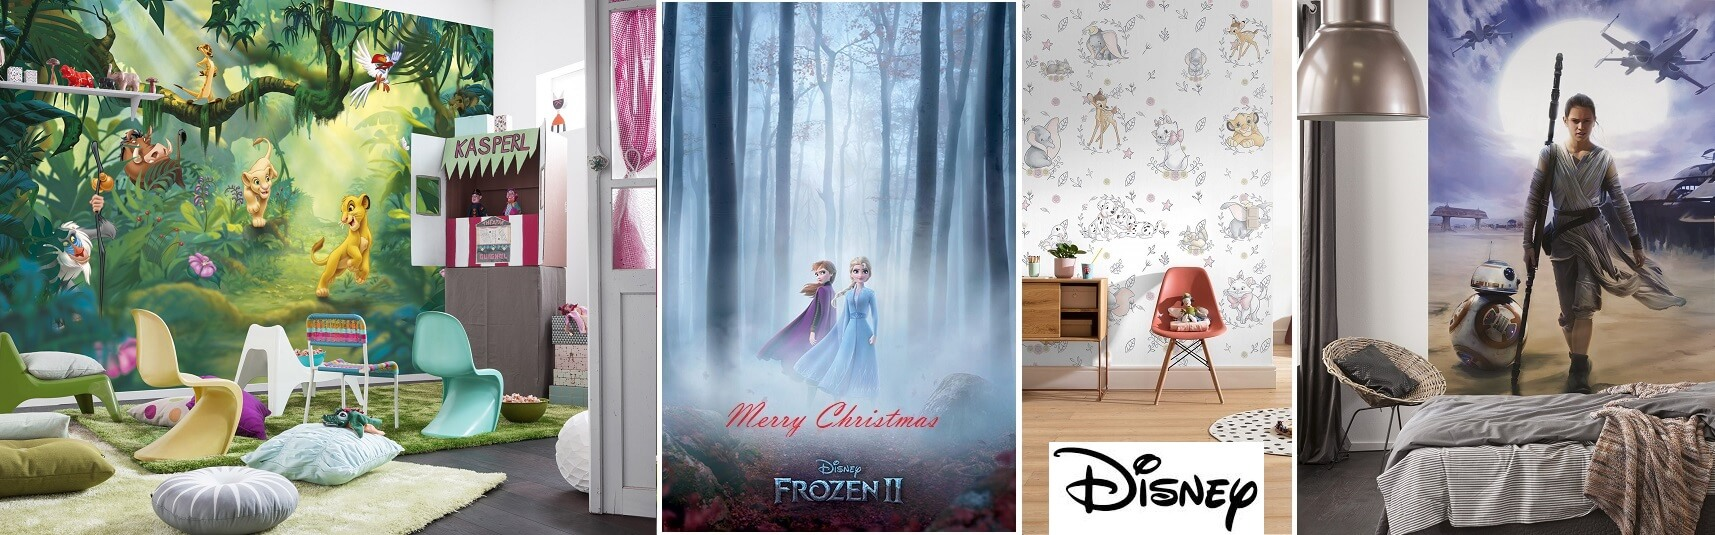 Christmas promotion wallpaper murals for interior walls